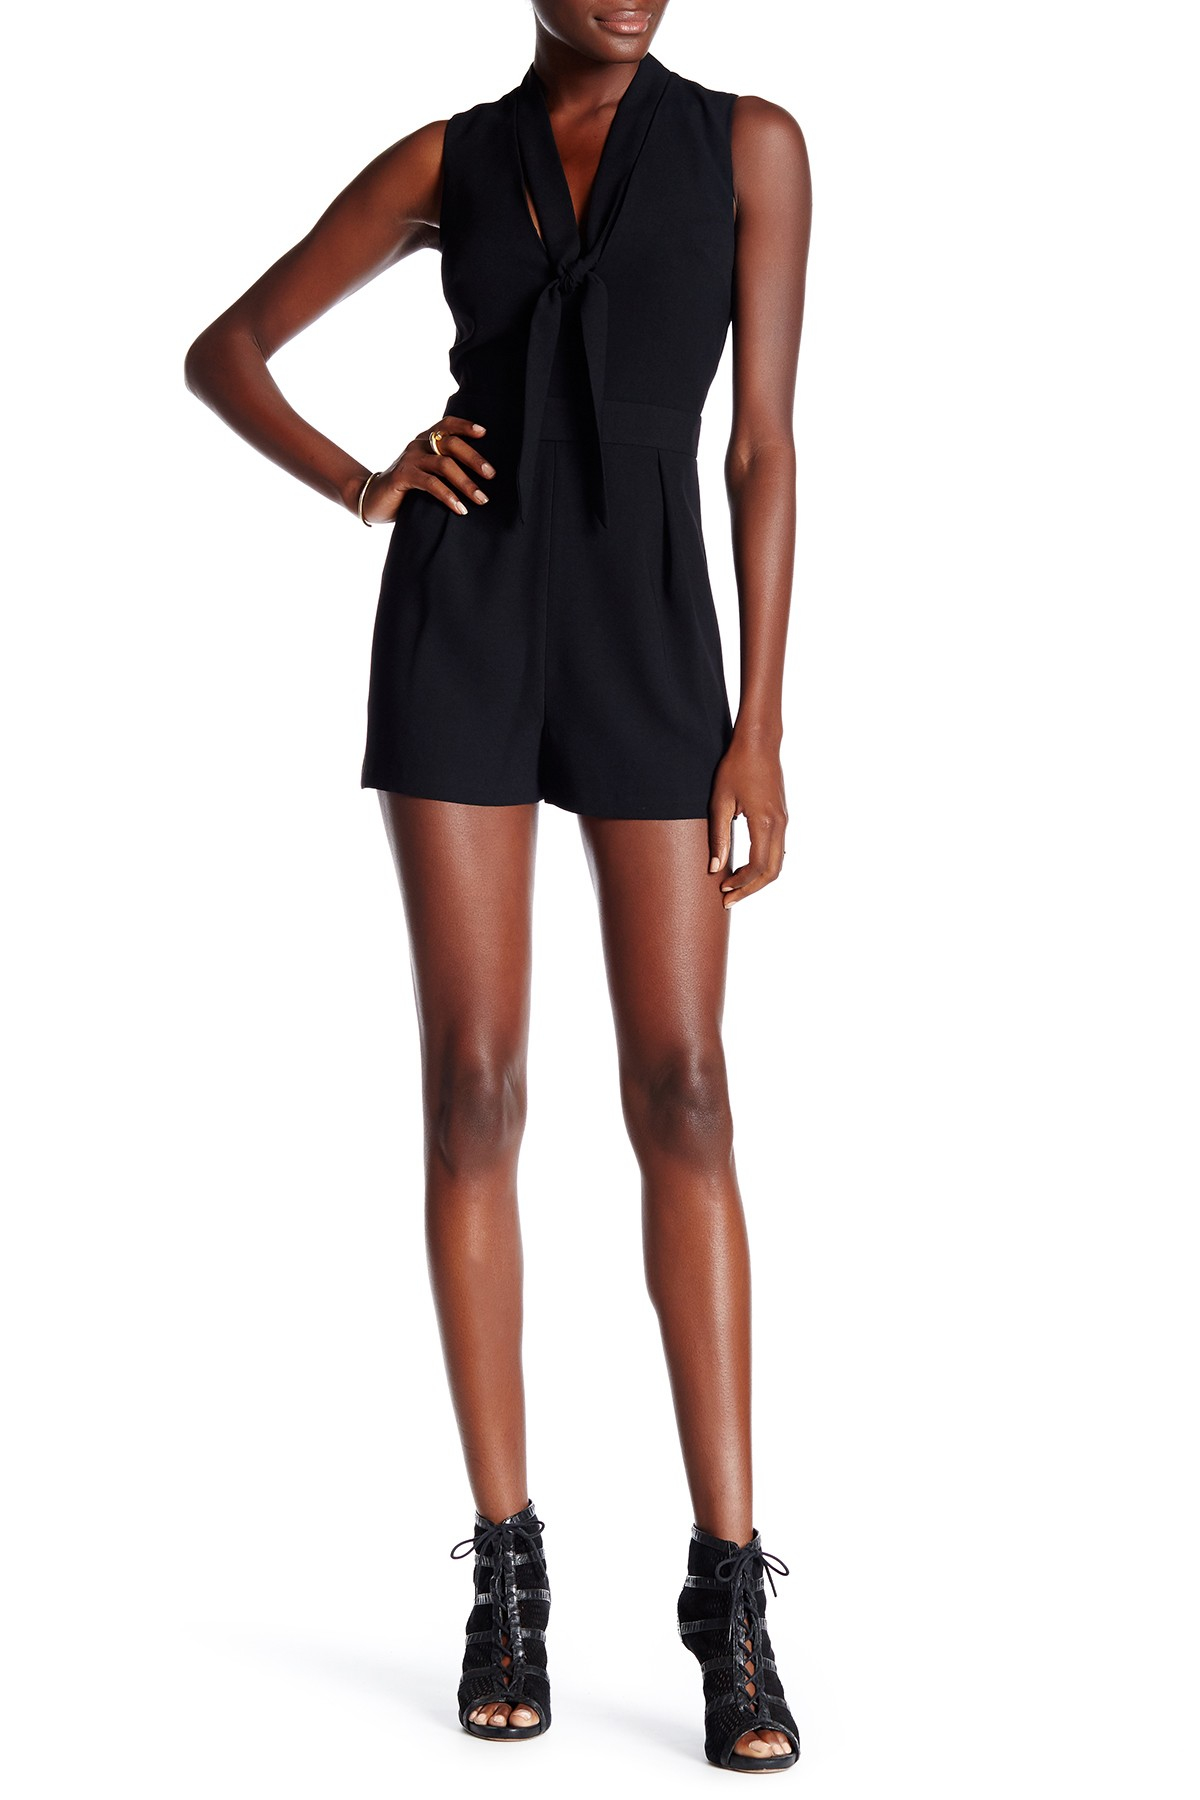 lyst topshop tie neck sleeveless romper in black. Black Bedroom Furniture Sets. Home Design Ideas